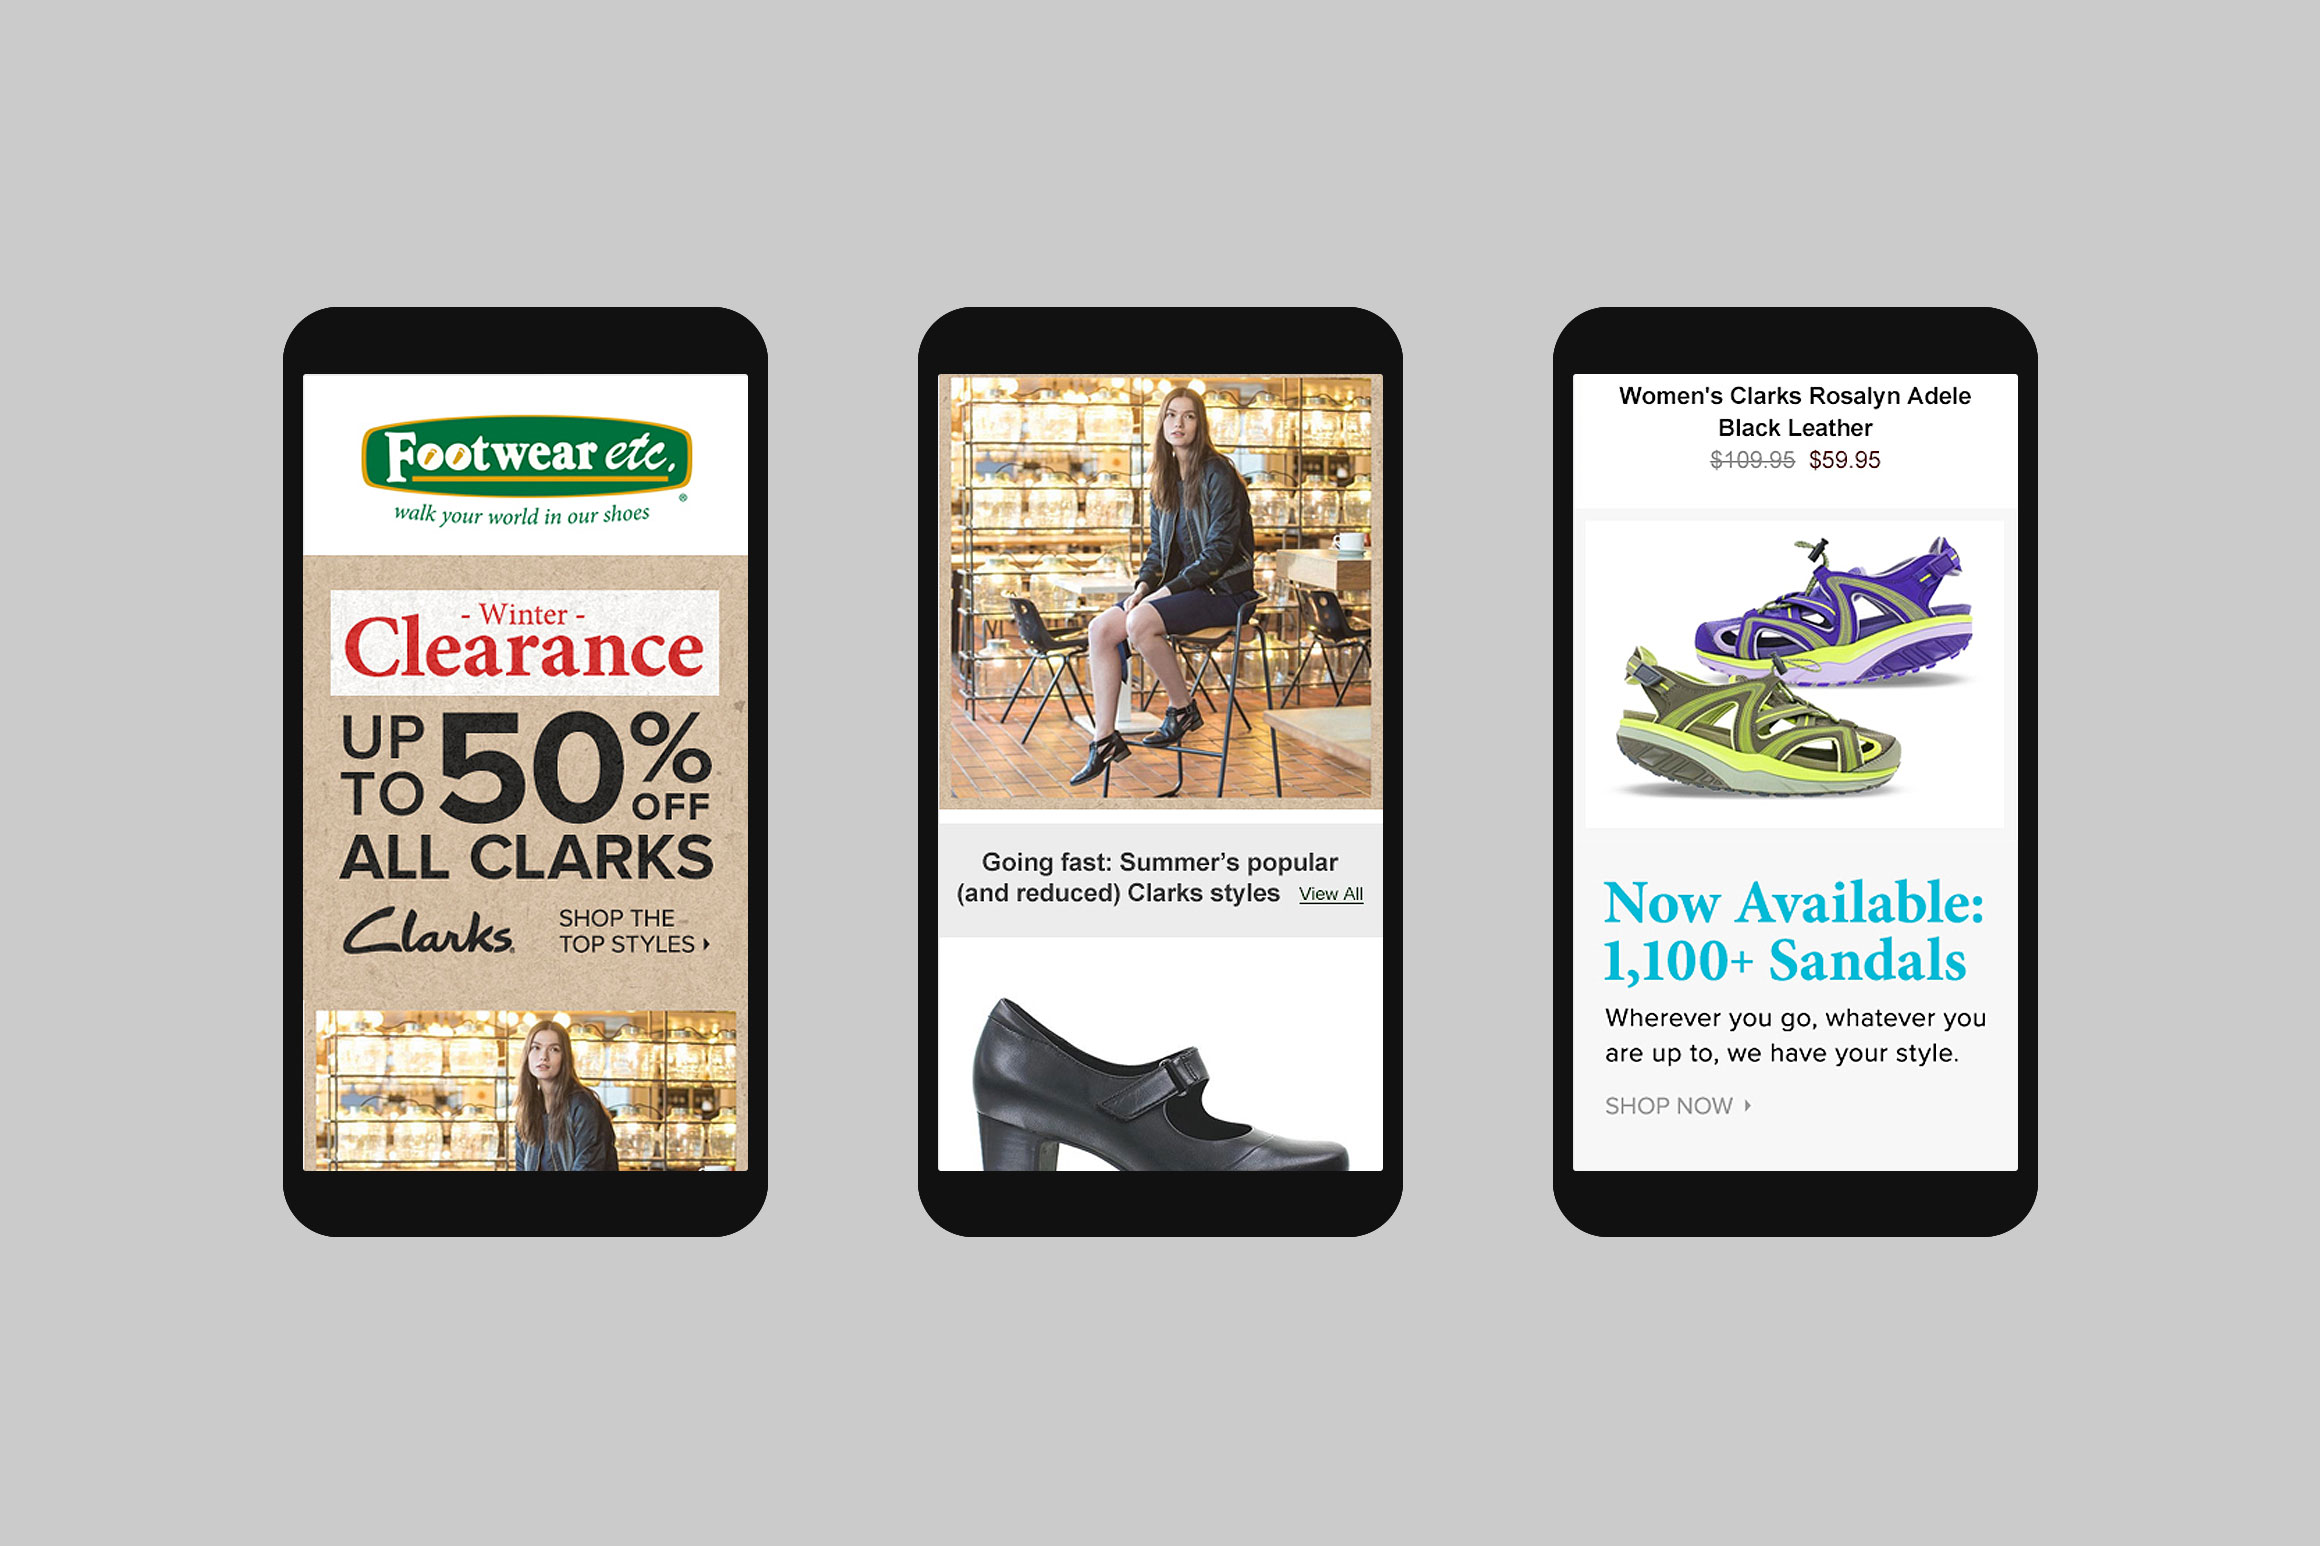 Footwear etc. Mobile Email Template #4